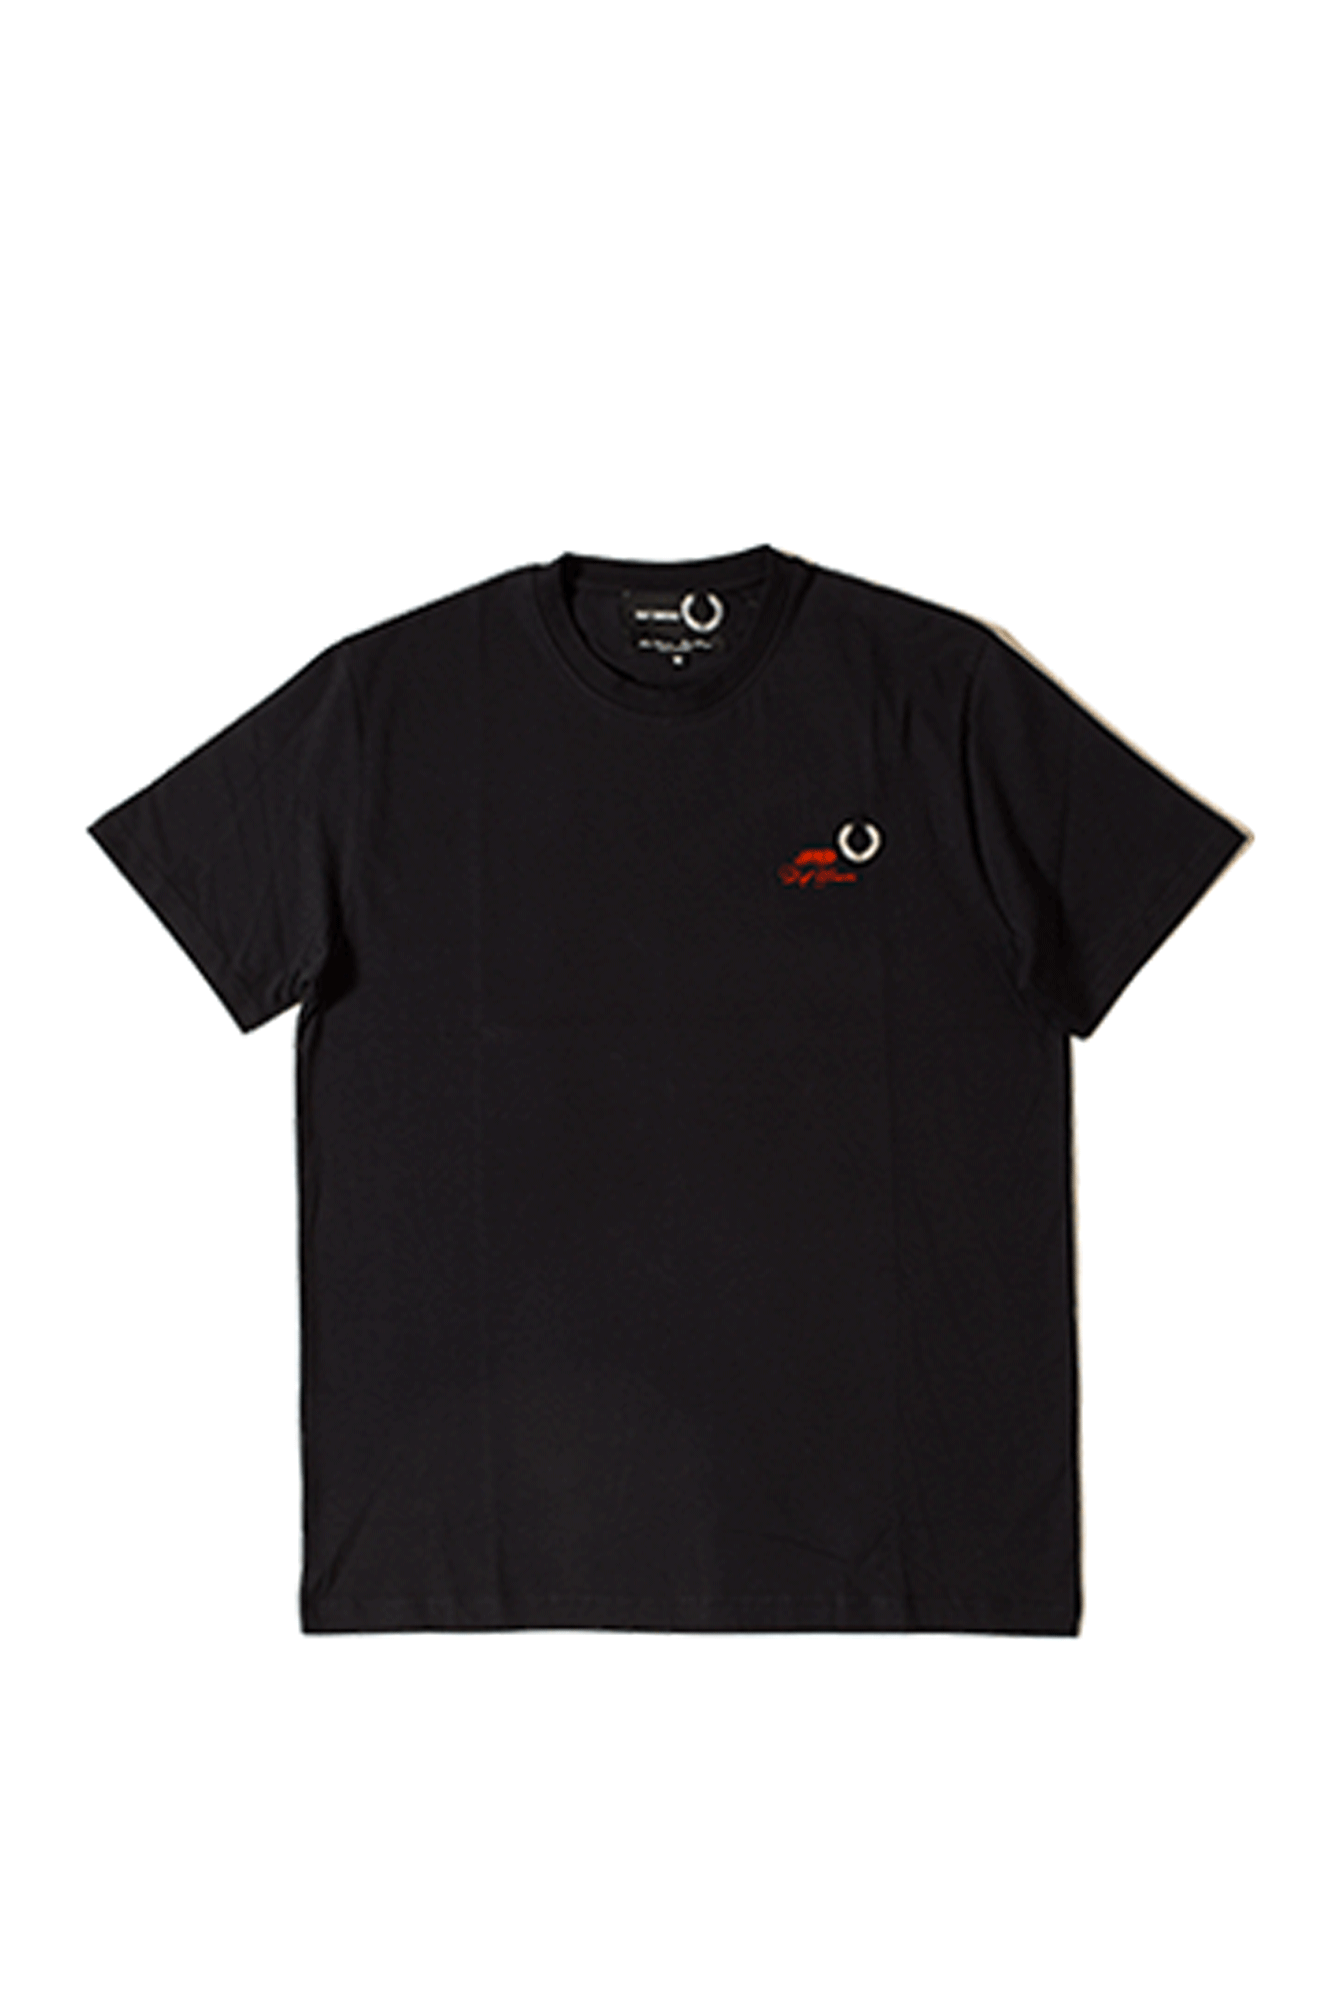 Fred Perry T-Shirts T-Shirt x Raf Simons Blu SM8130#000#608#M - One Block Down